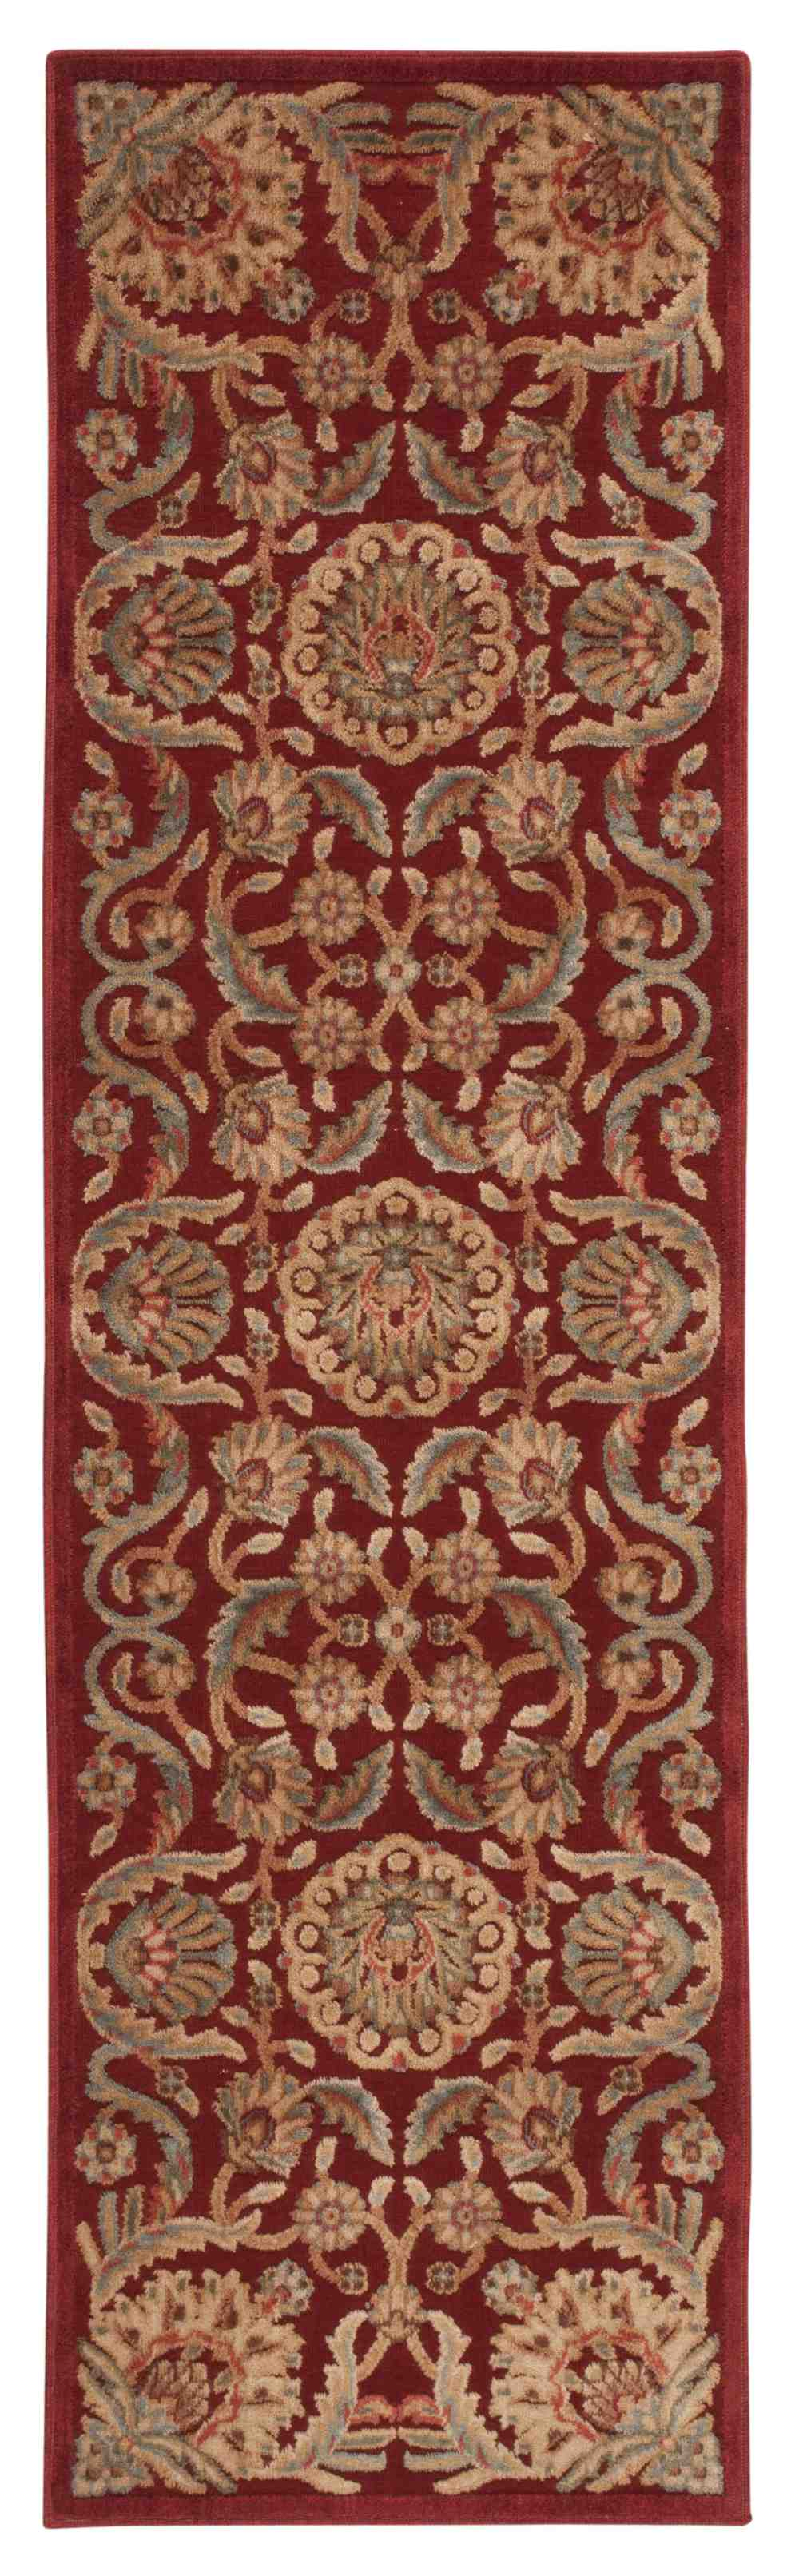 Nourison graphic illusions gil17 red area rug free shipping for Graphic illusions